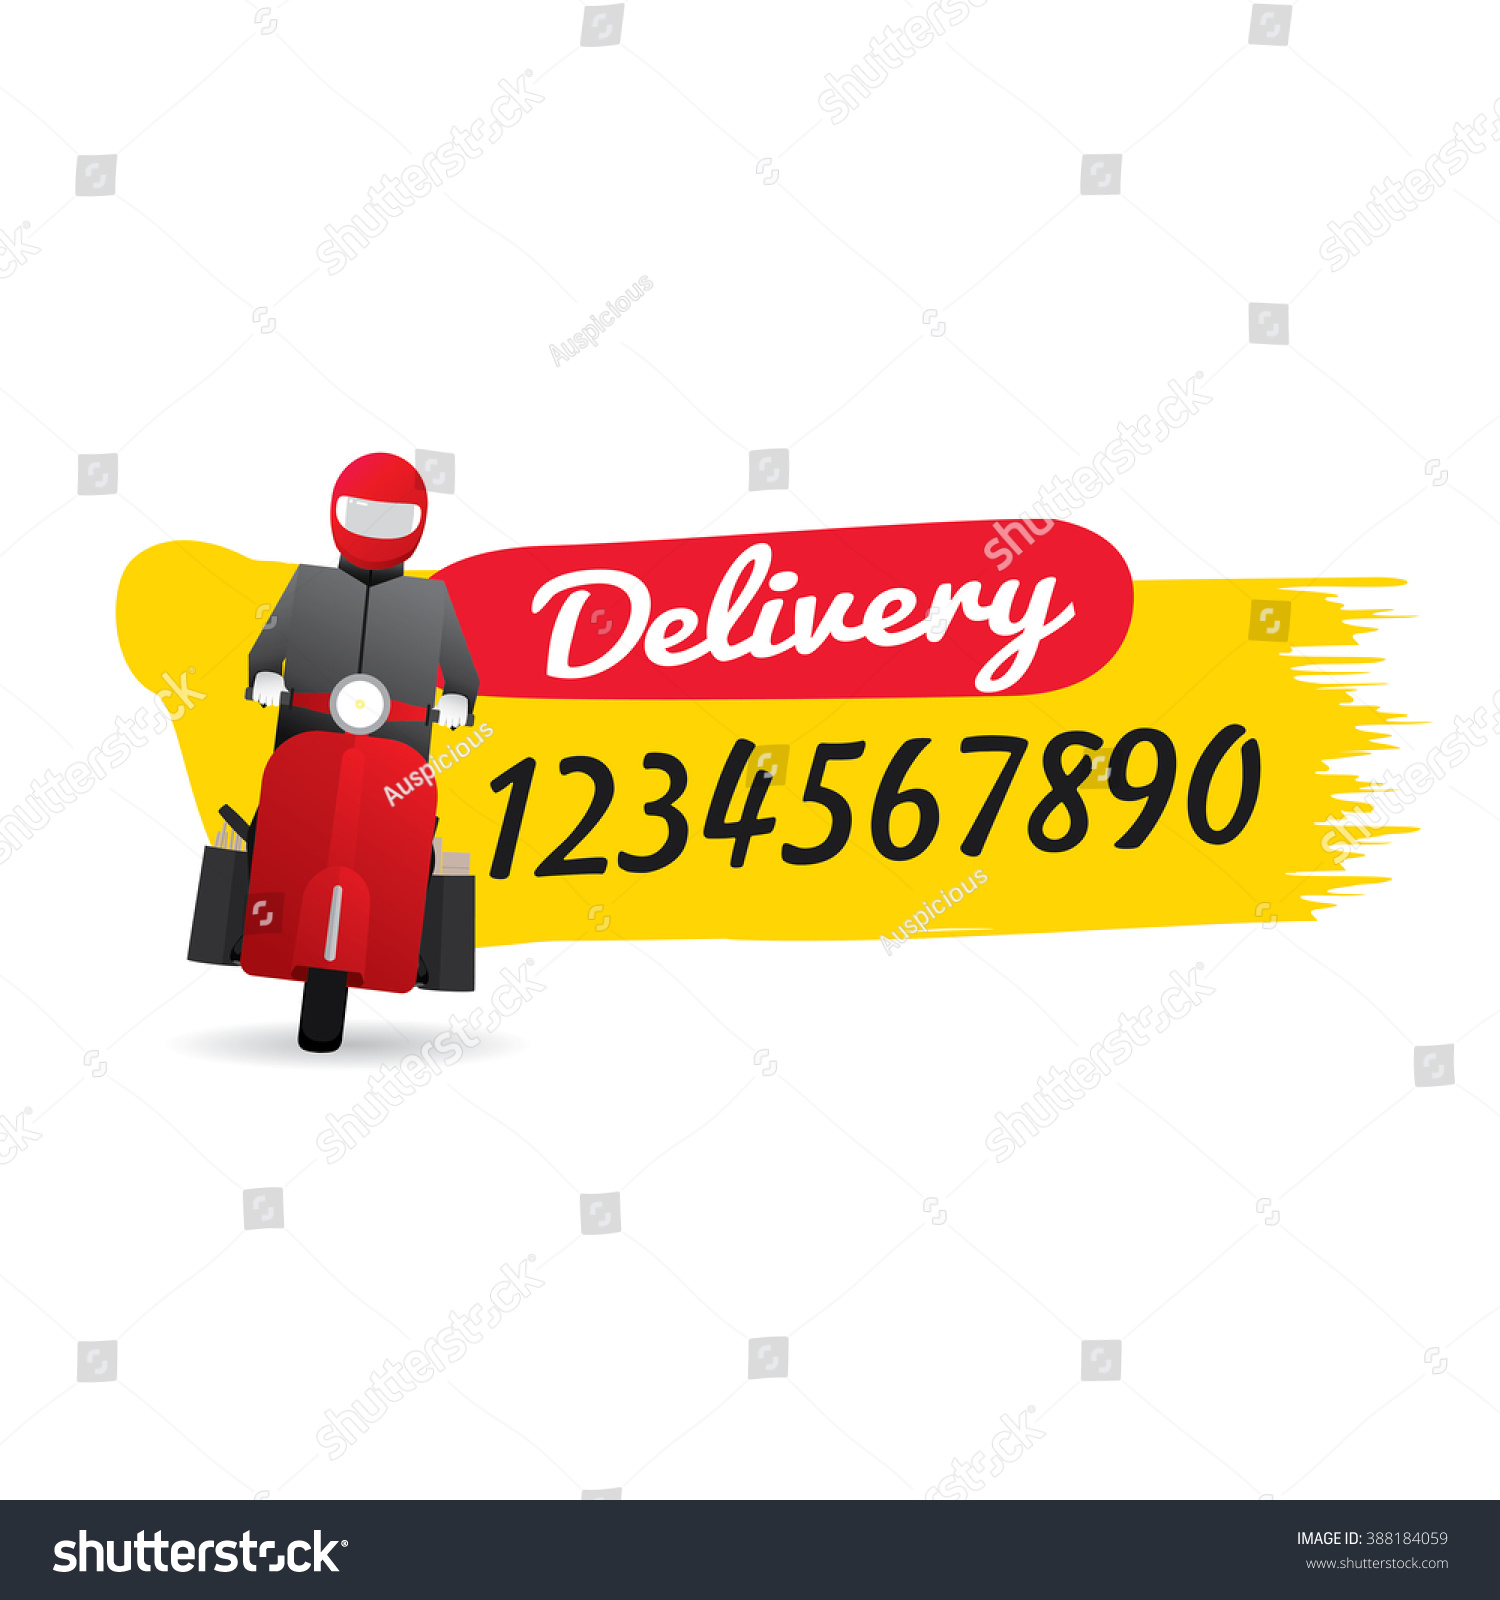 Delivery Man Courier Service Call Number Stock Vector